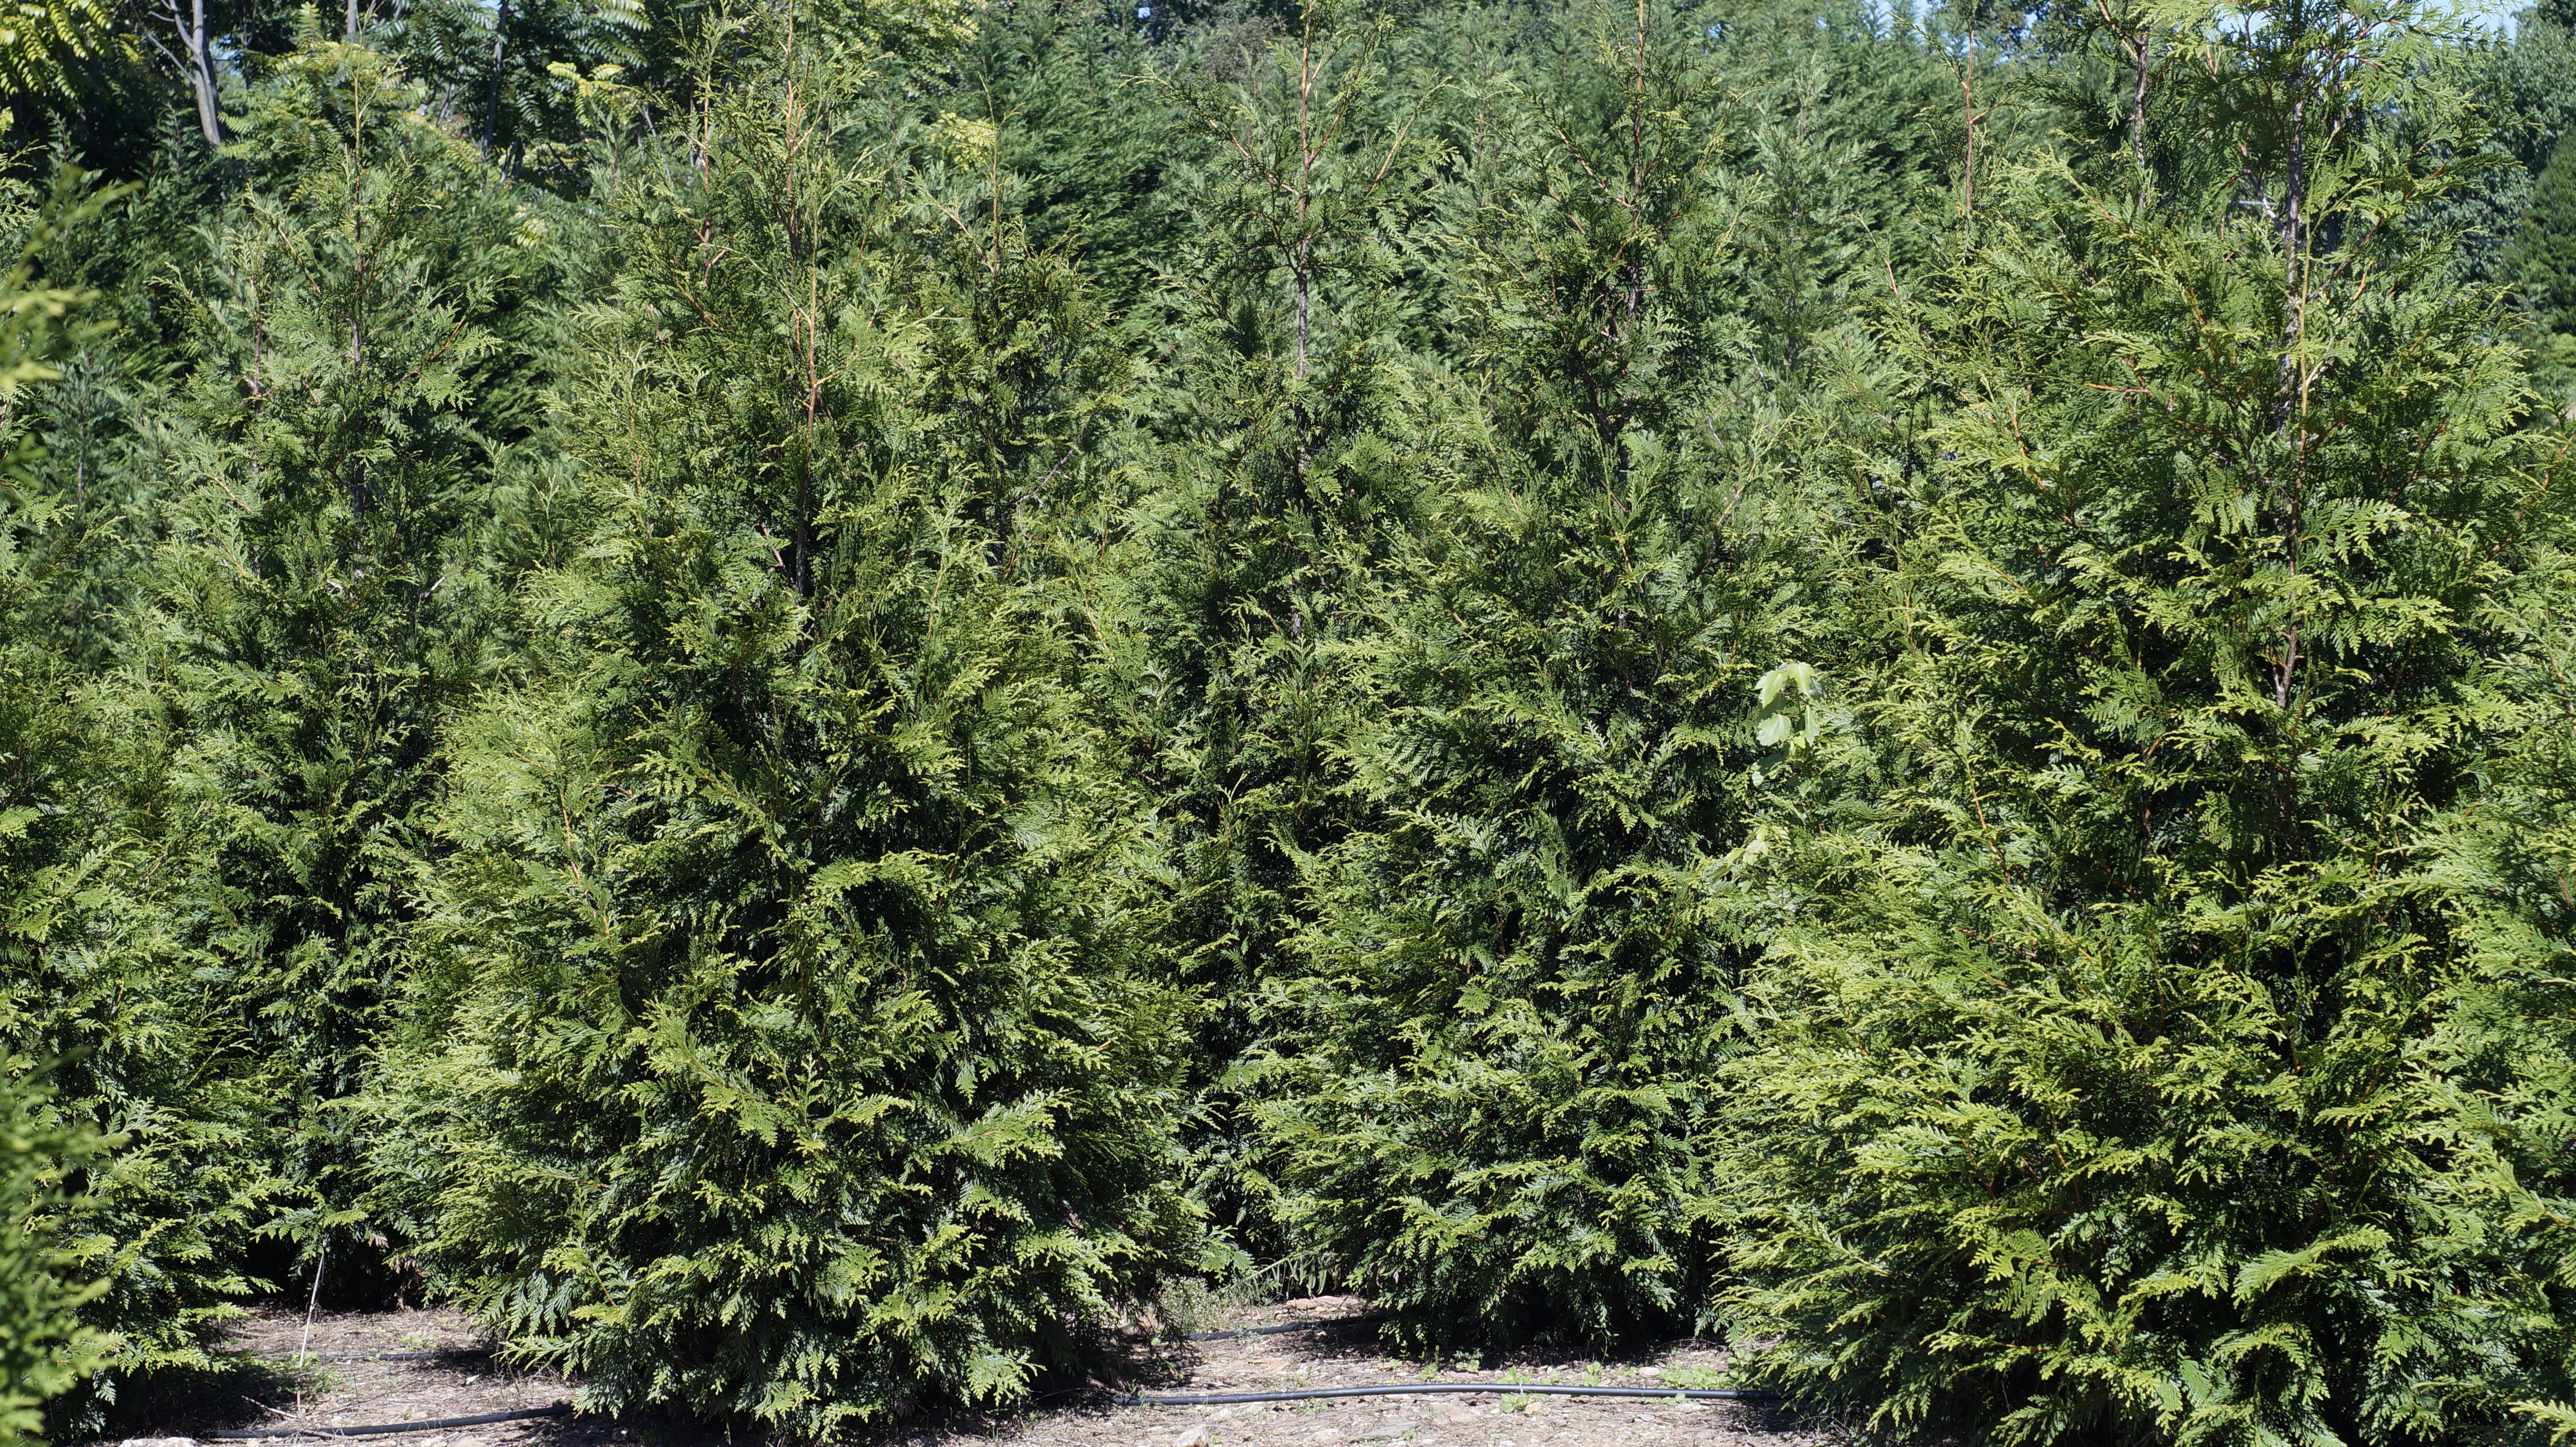 Green Giant Arborvitae Trees ready for your living fence installation